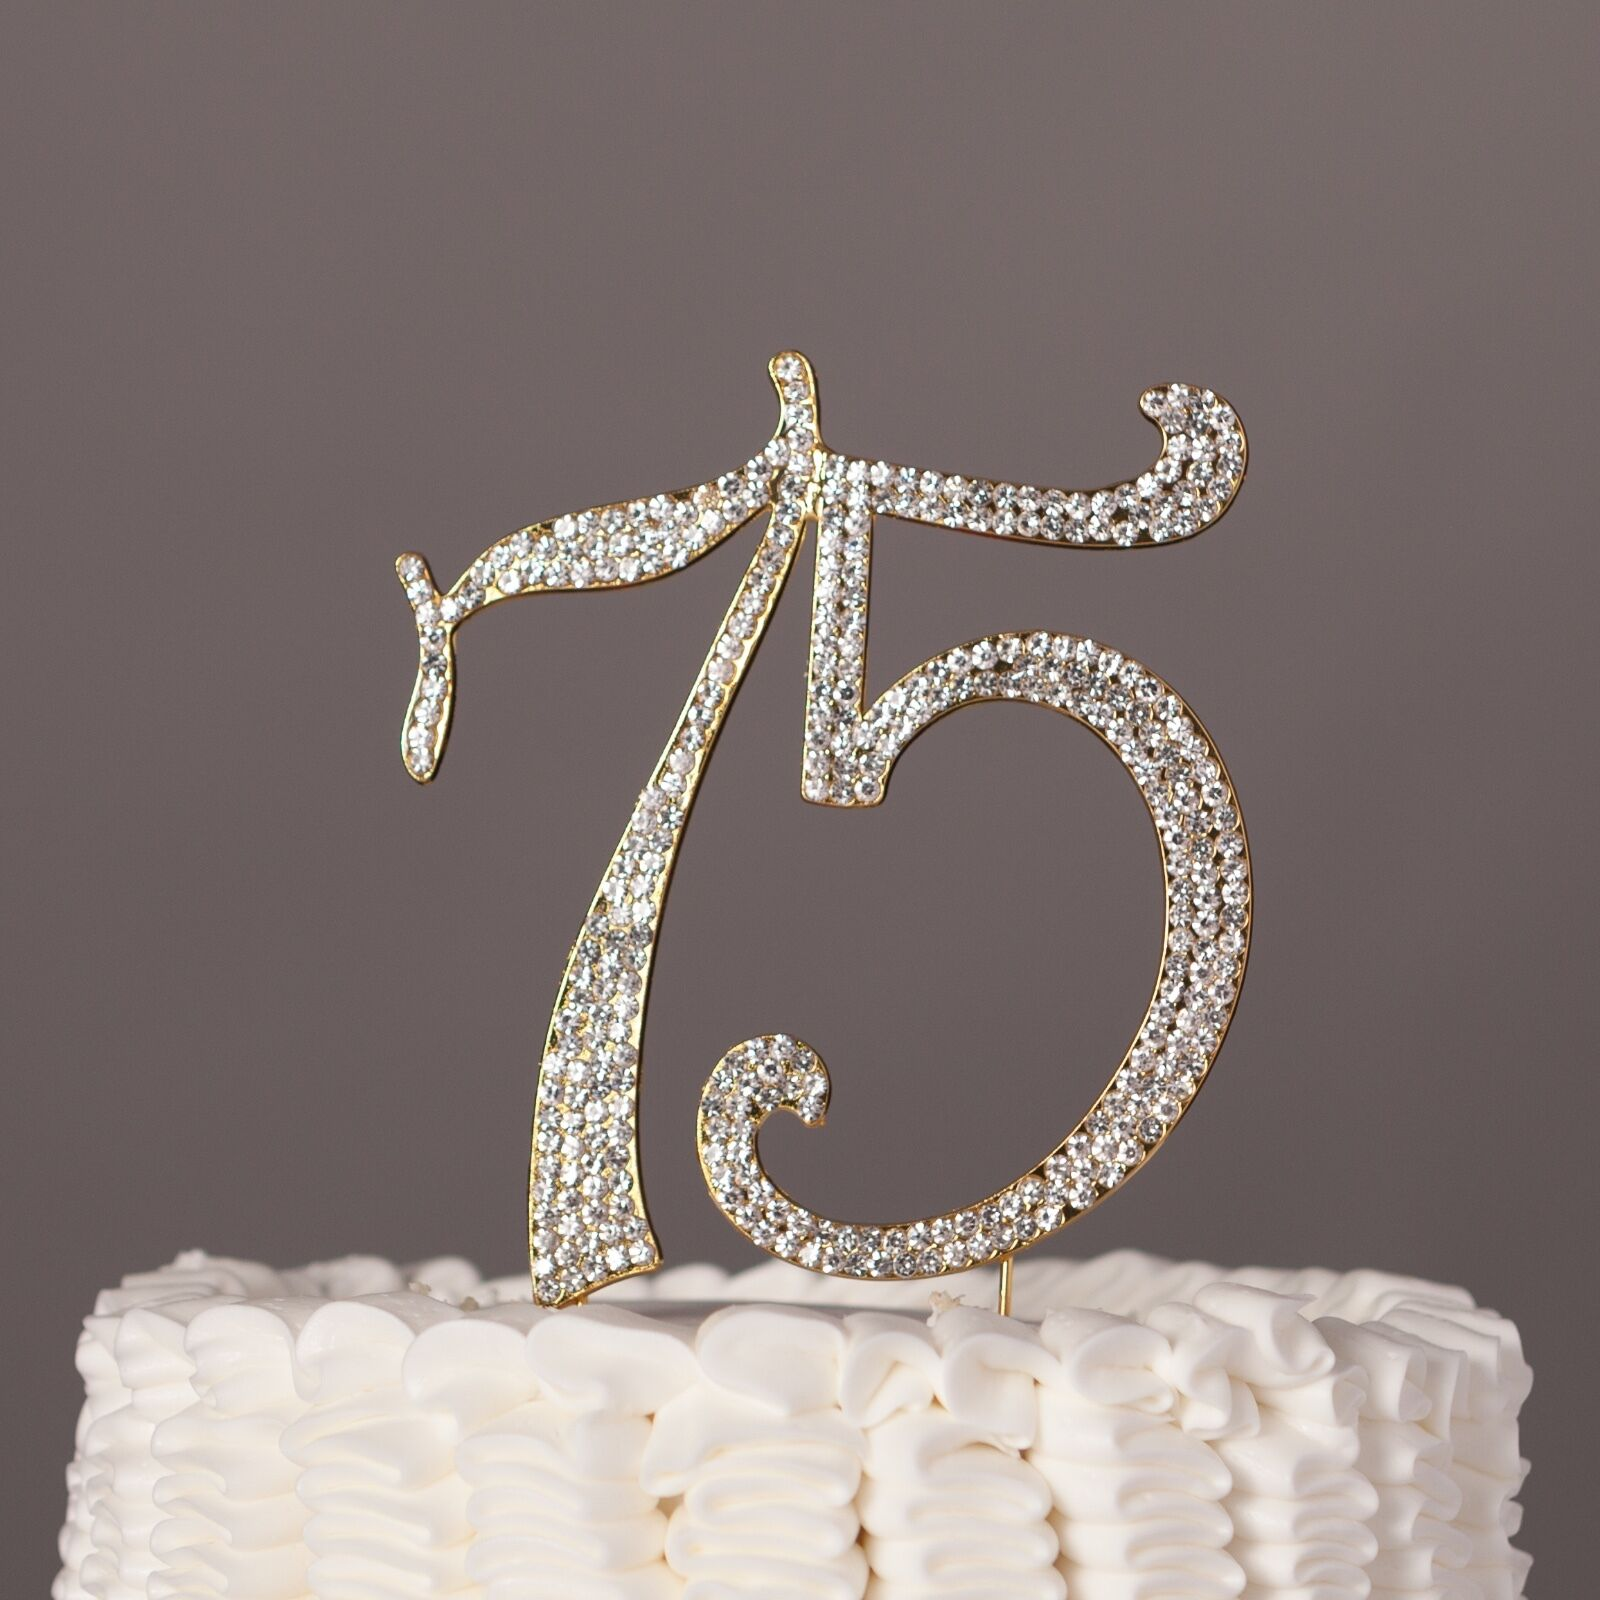 75 Cake Topper For 75th Birthday Or Anniversary Gold Number Party